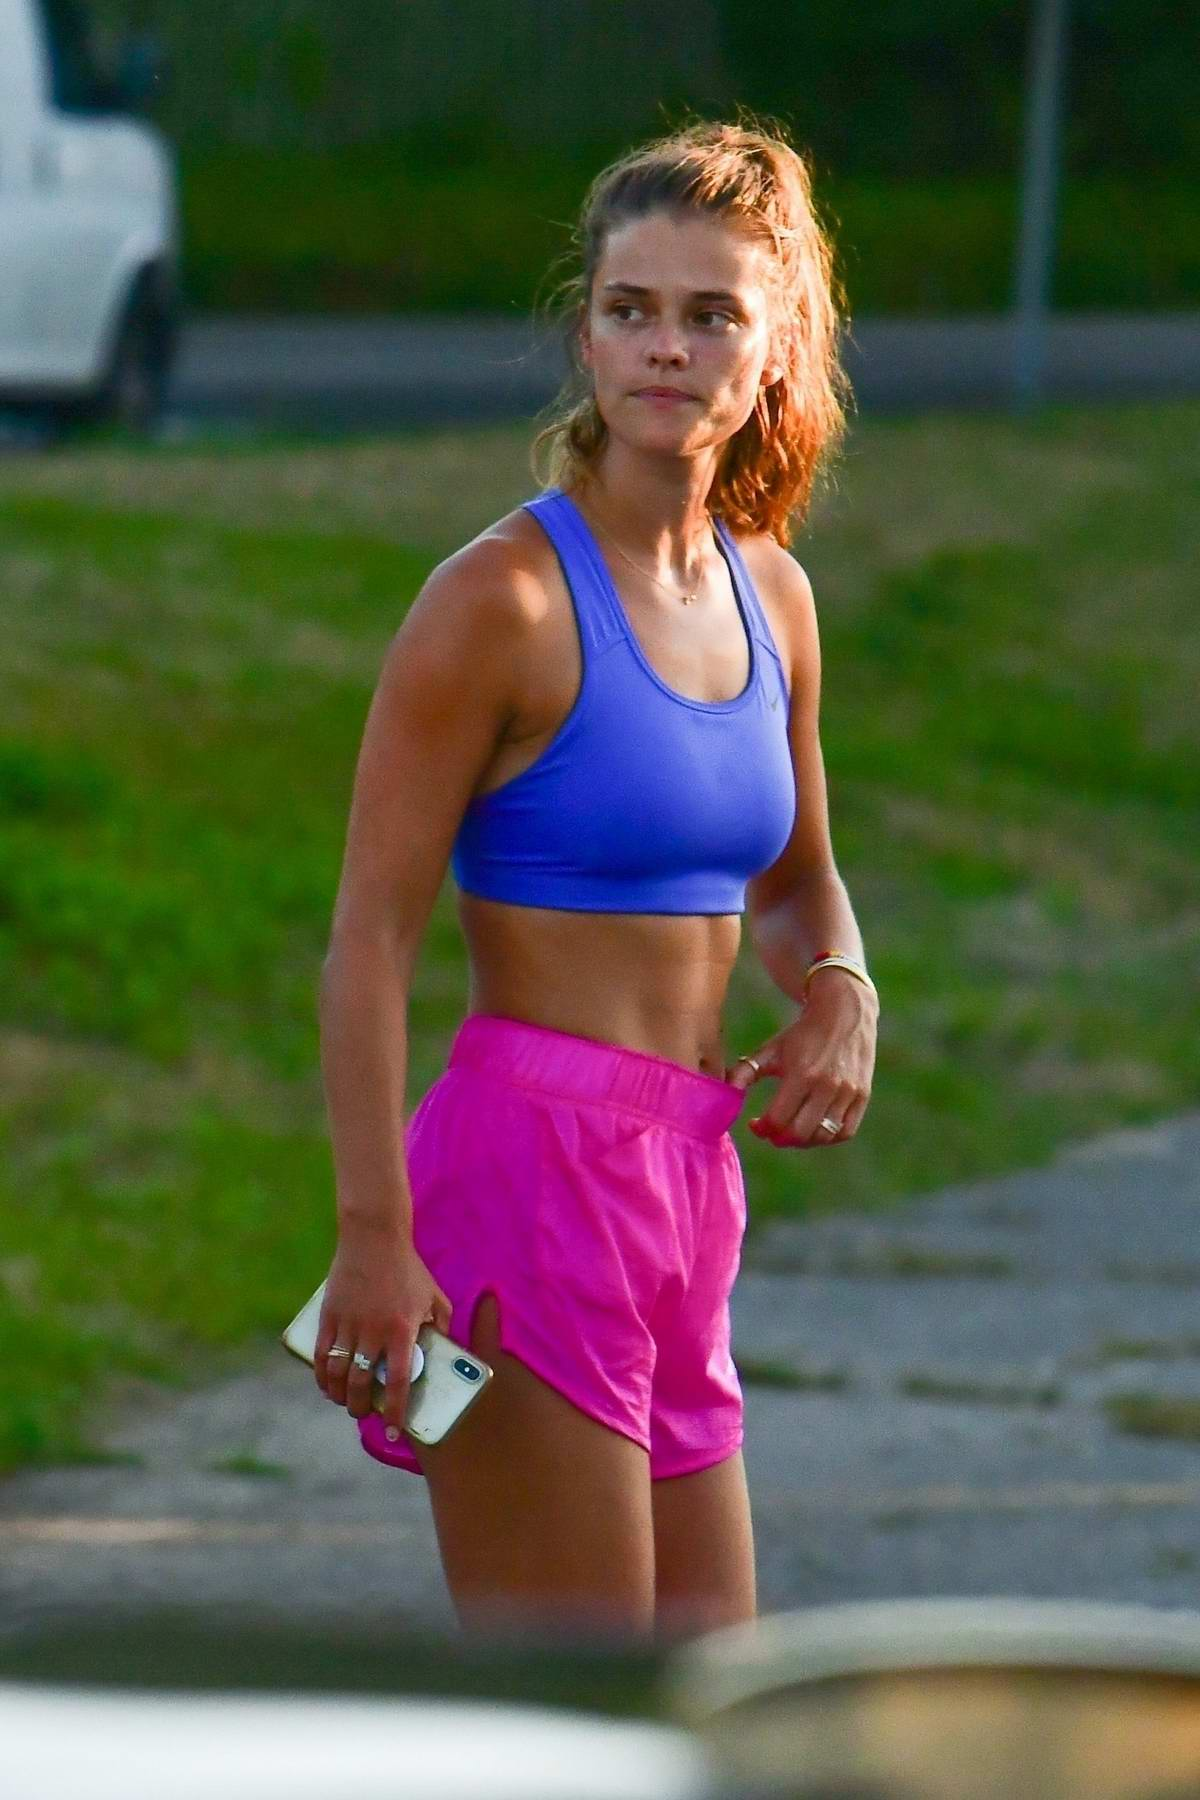 Nina Agdal display her toned midriff as she wraps up a workout session with Jack Brinkley-Cook in The Hamptons, New York